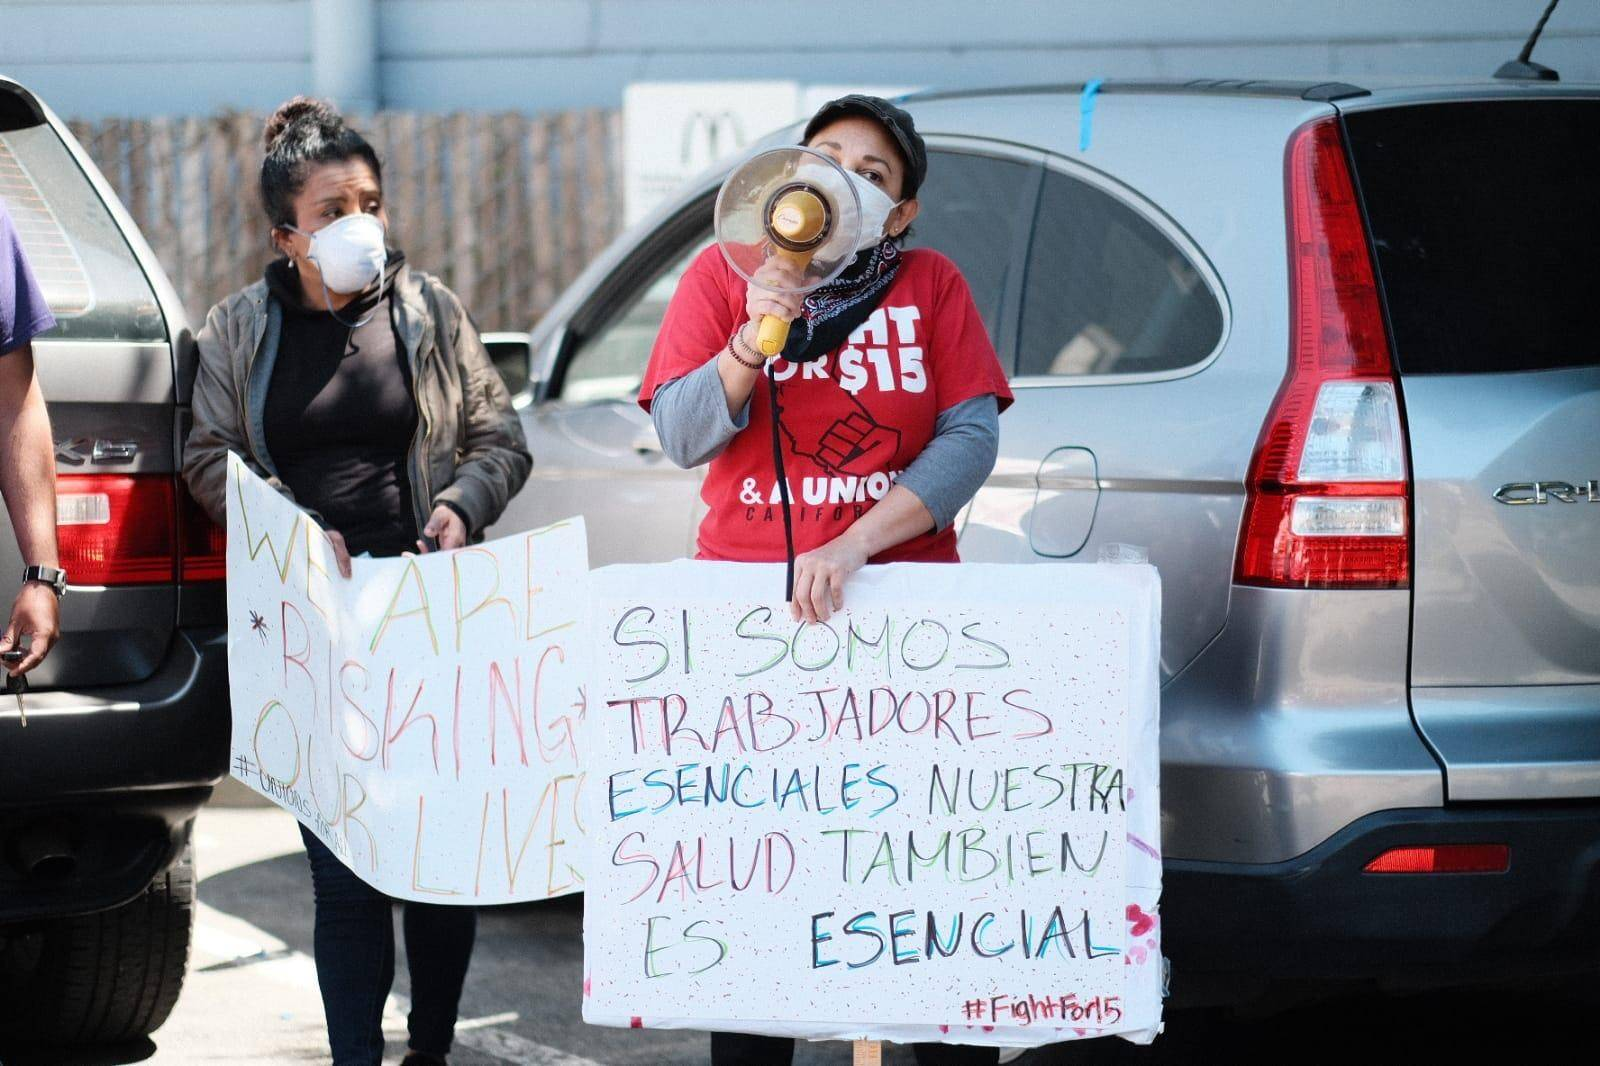 McDonald's workers call for personal protective equipment at a protest outside the Fillmore location on April 30. (Photo courtesy Eric Rudd/Fight for $15)